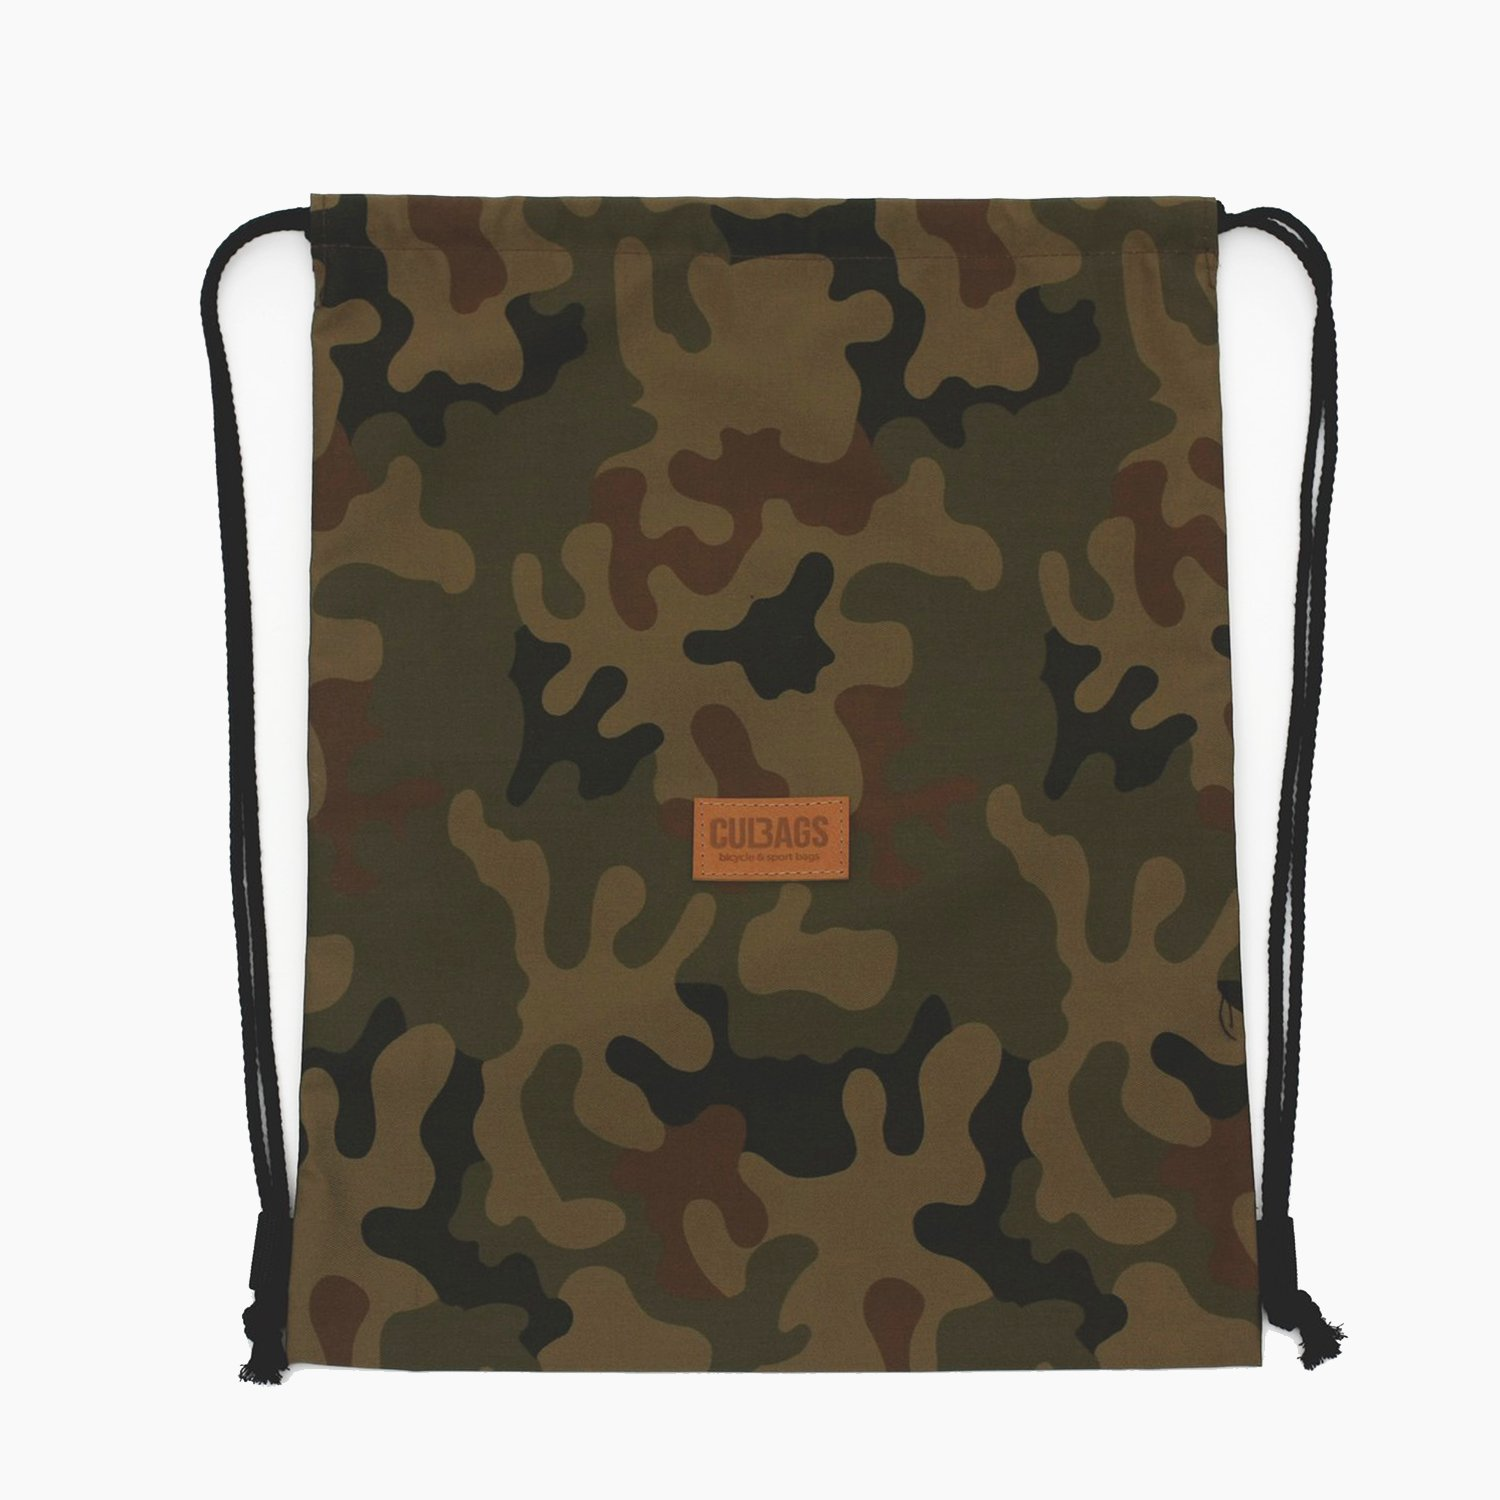 C-BAGS SACCO MORO Beutel Sportbeutel  Beuteltasche Tarnmuster Camouflage Army